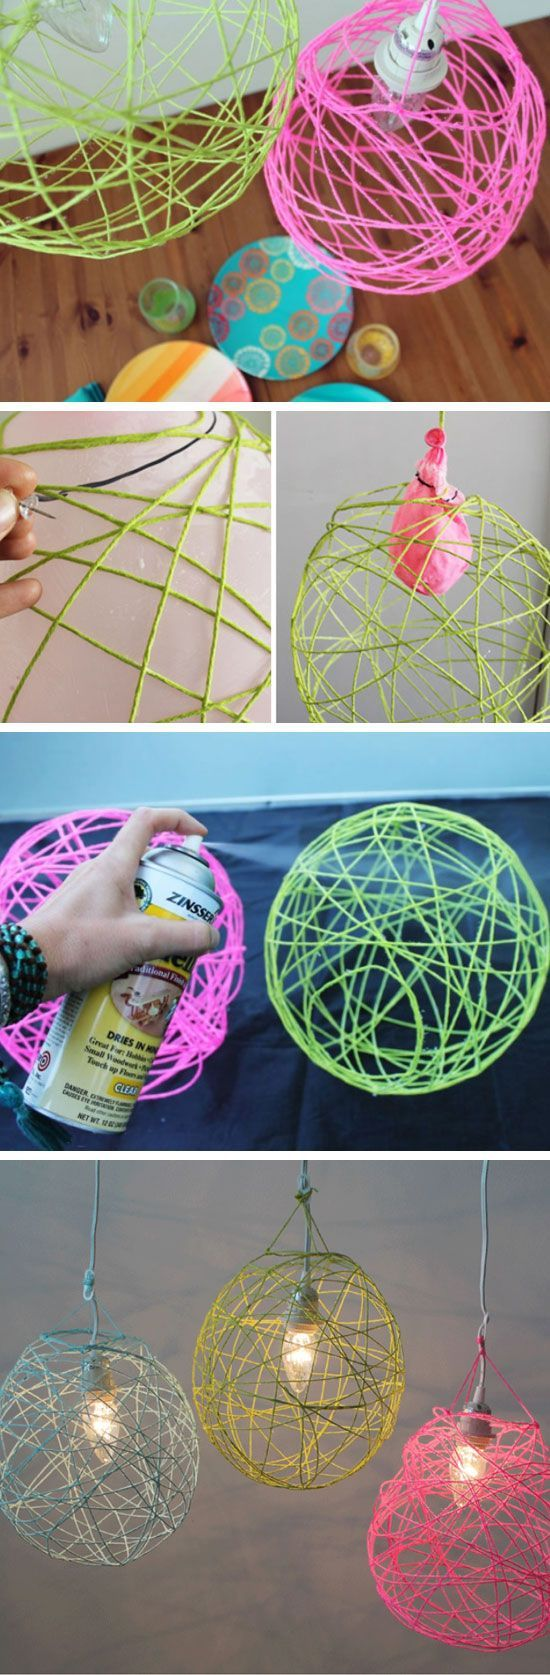 Bedroom Decor Diy Projects 24 gorgeous diys for your teenage girl's bedroom | bedrooms, nice